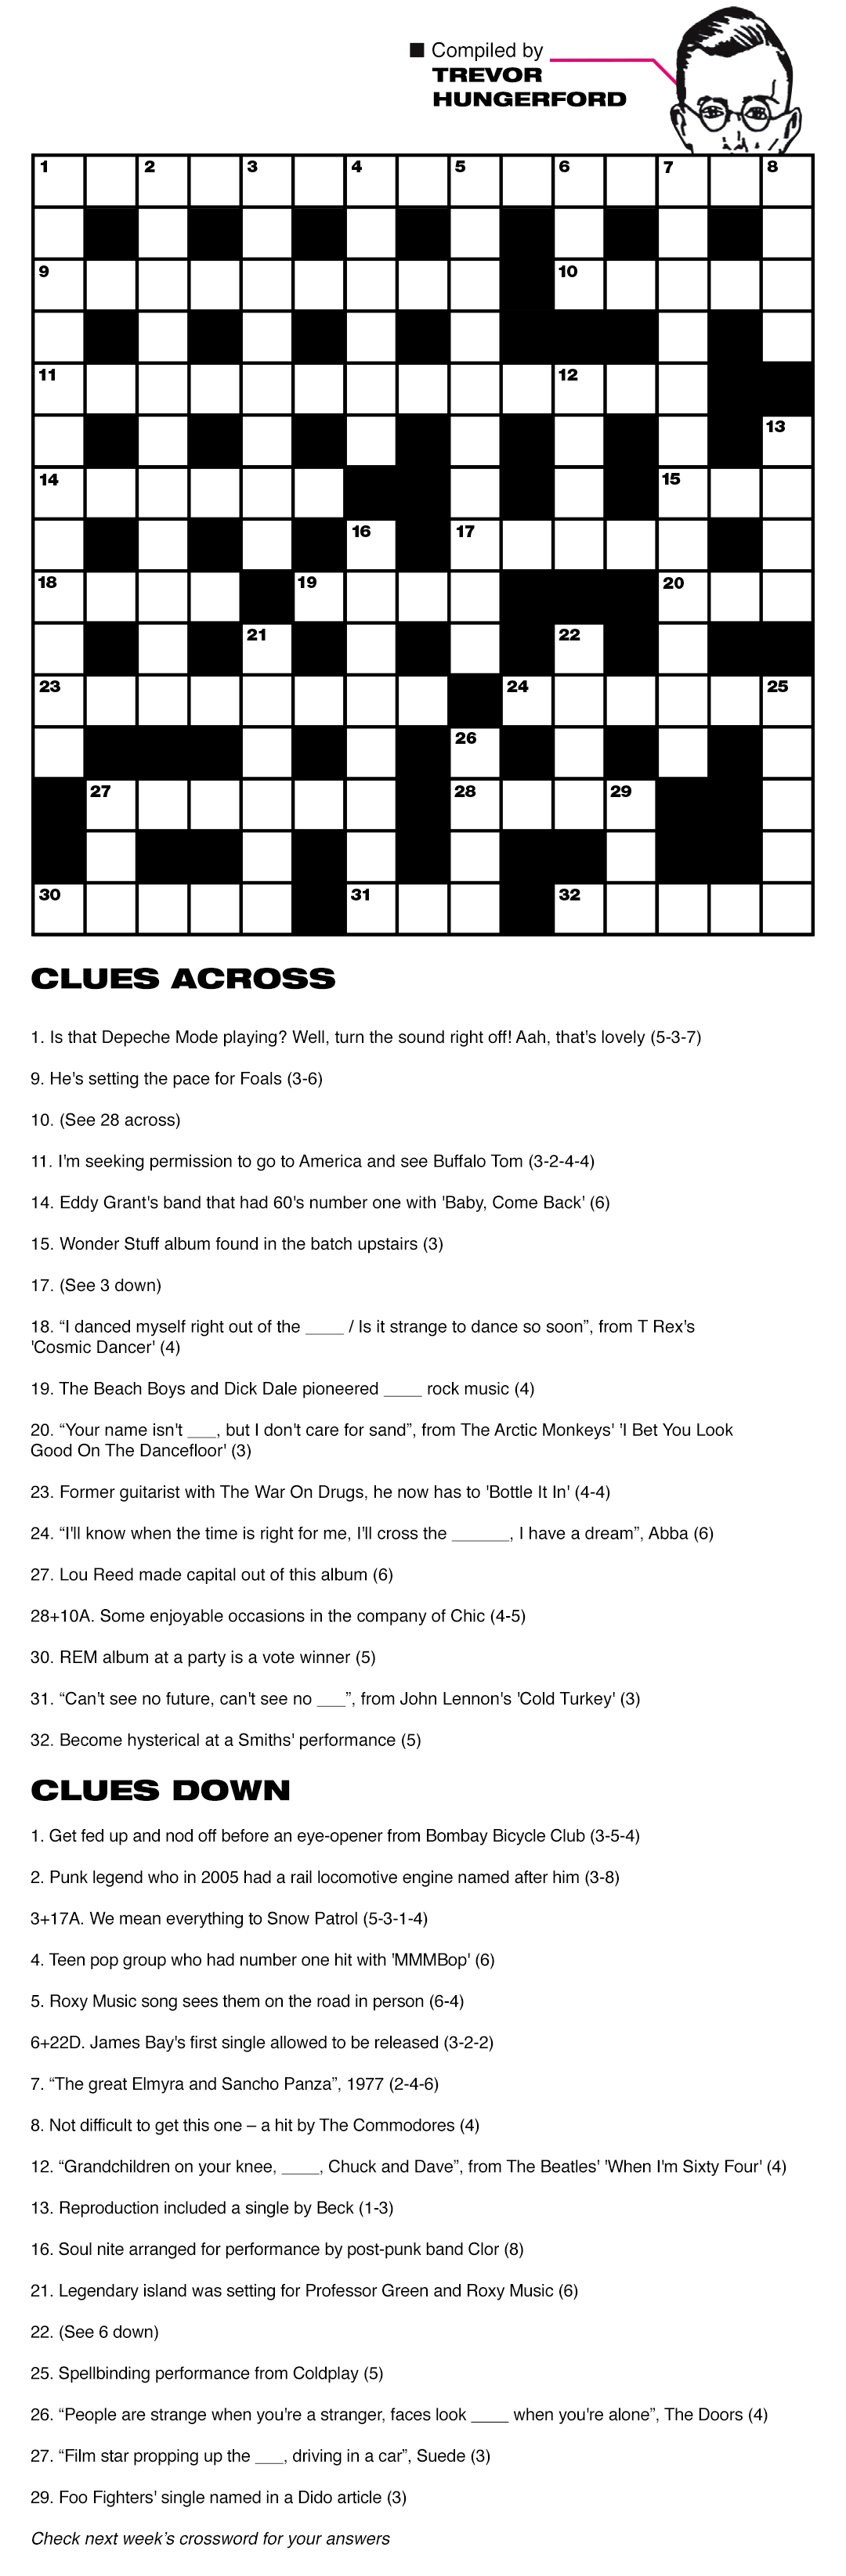 Crossword week 29